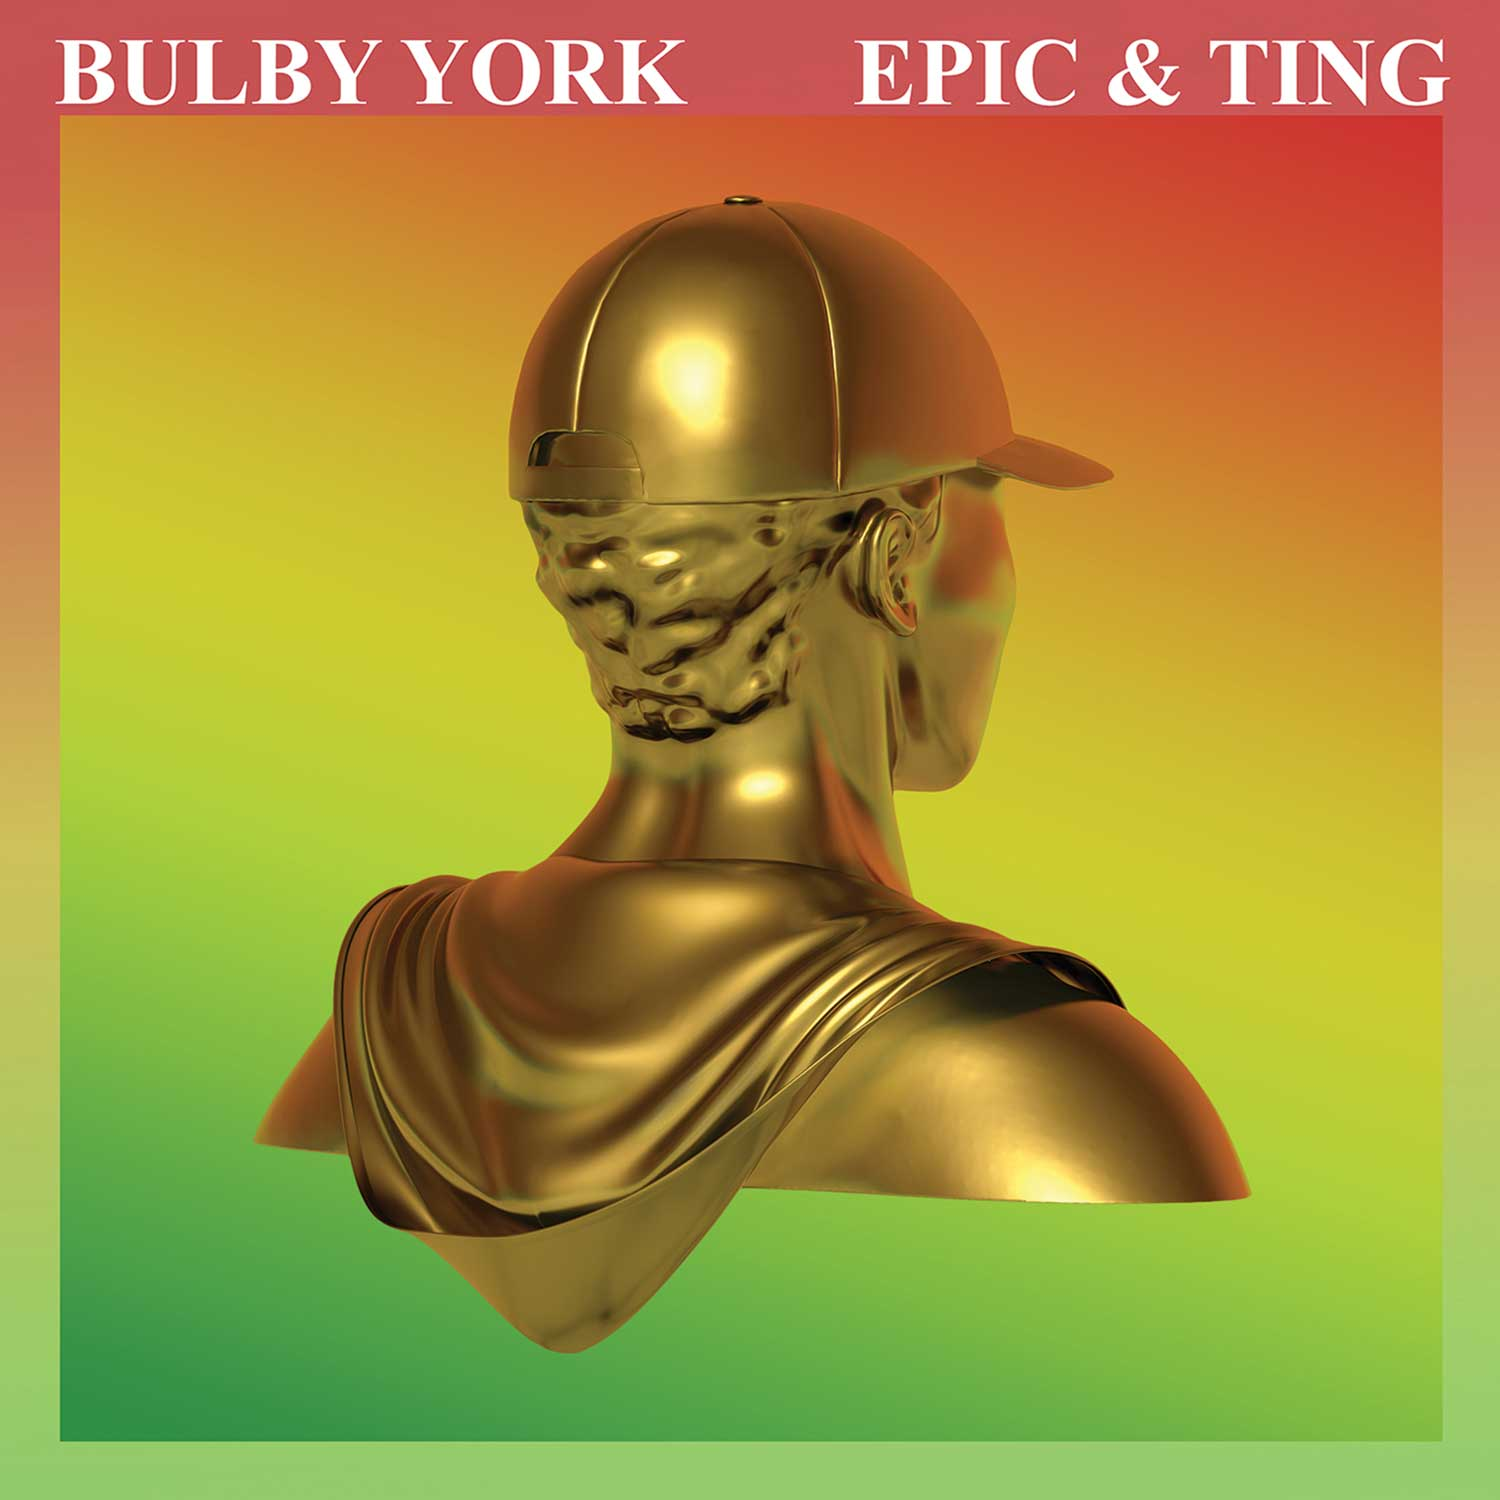 Bulby York Epic & Ting